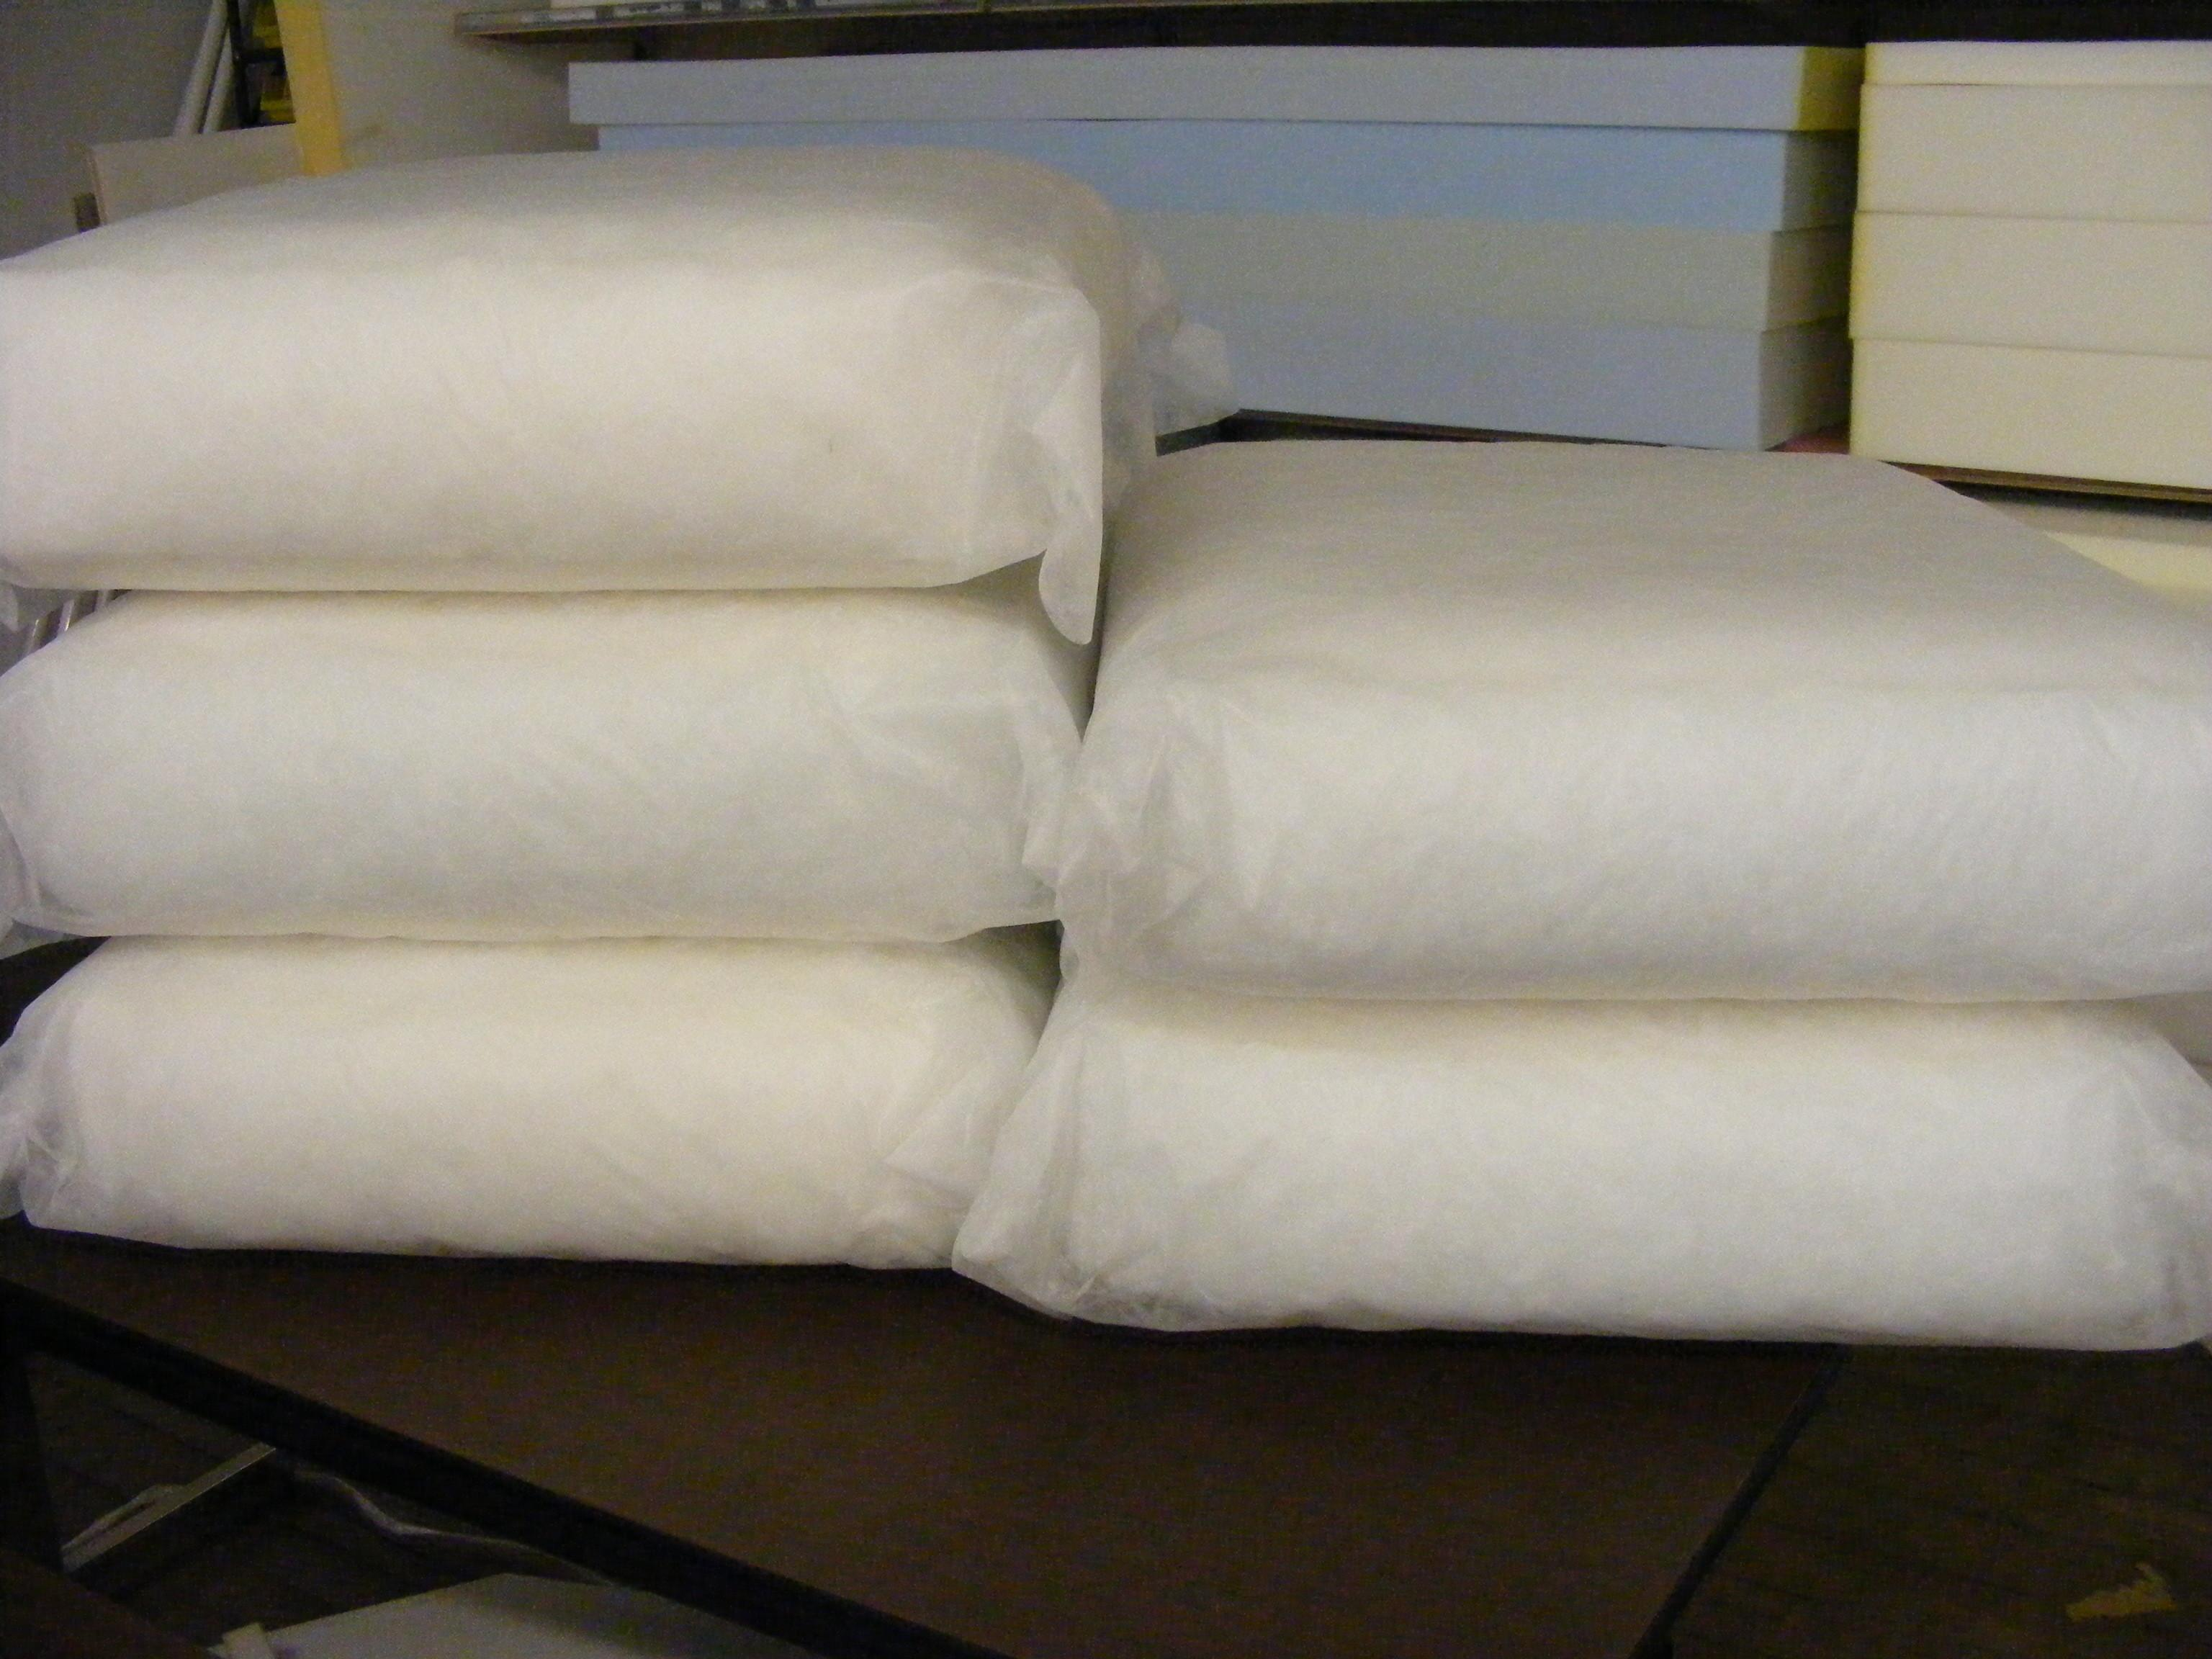 New Replacement Cores Leather Furniture Cushions